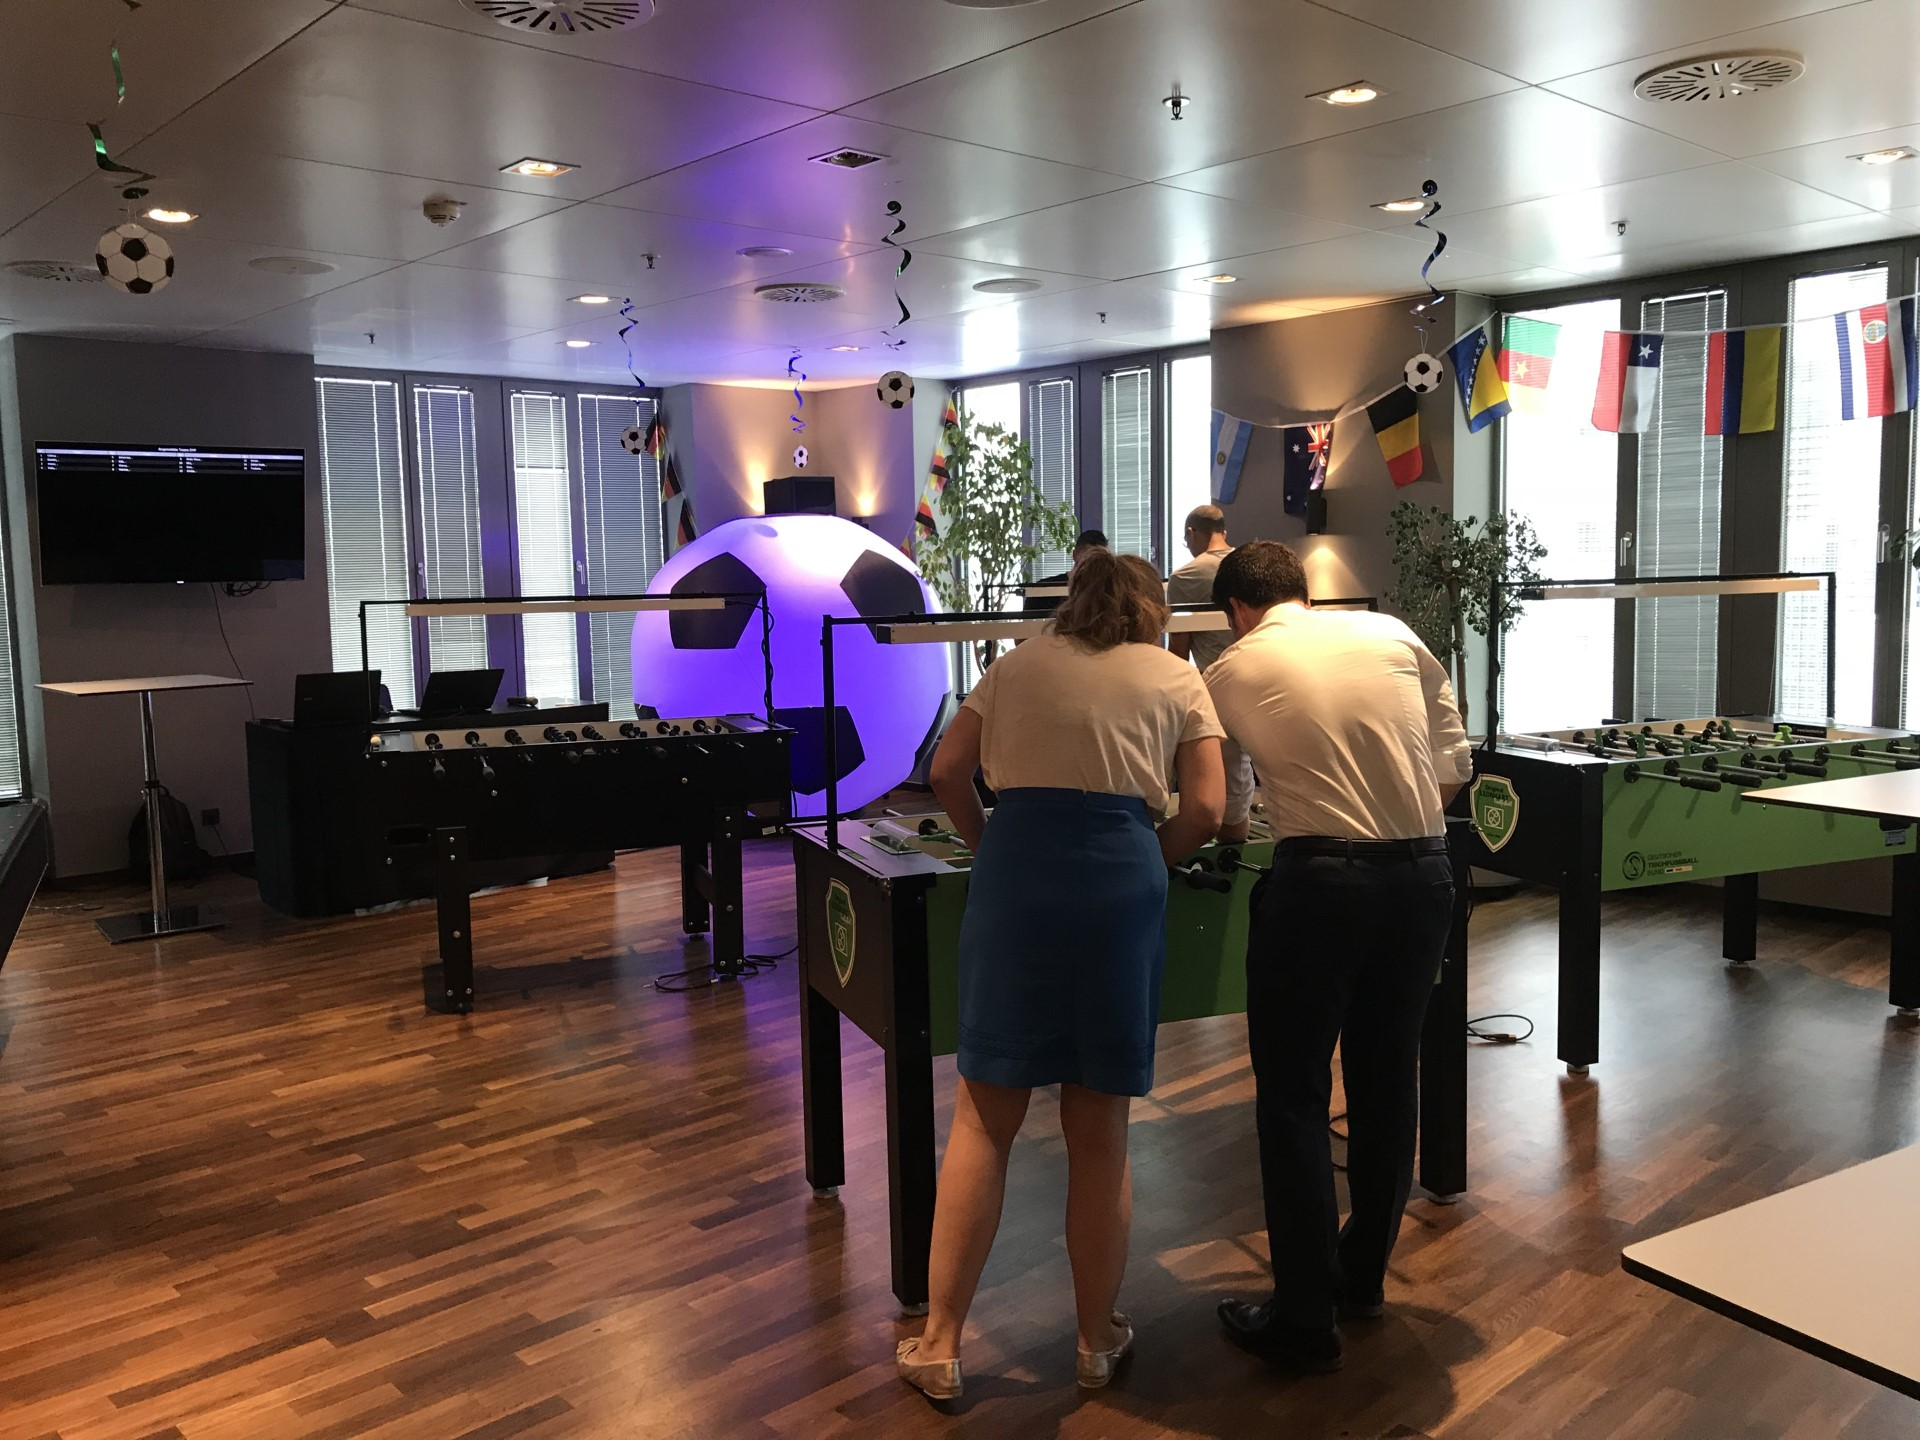 Table football tournament at our trainee evening in Frankfurt.